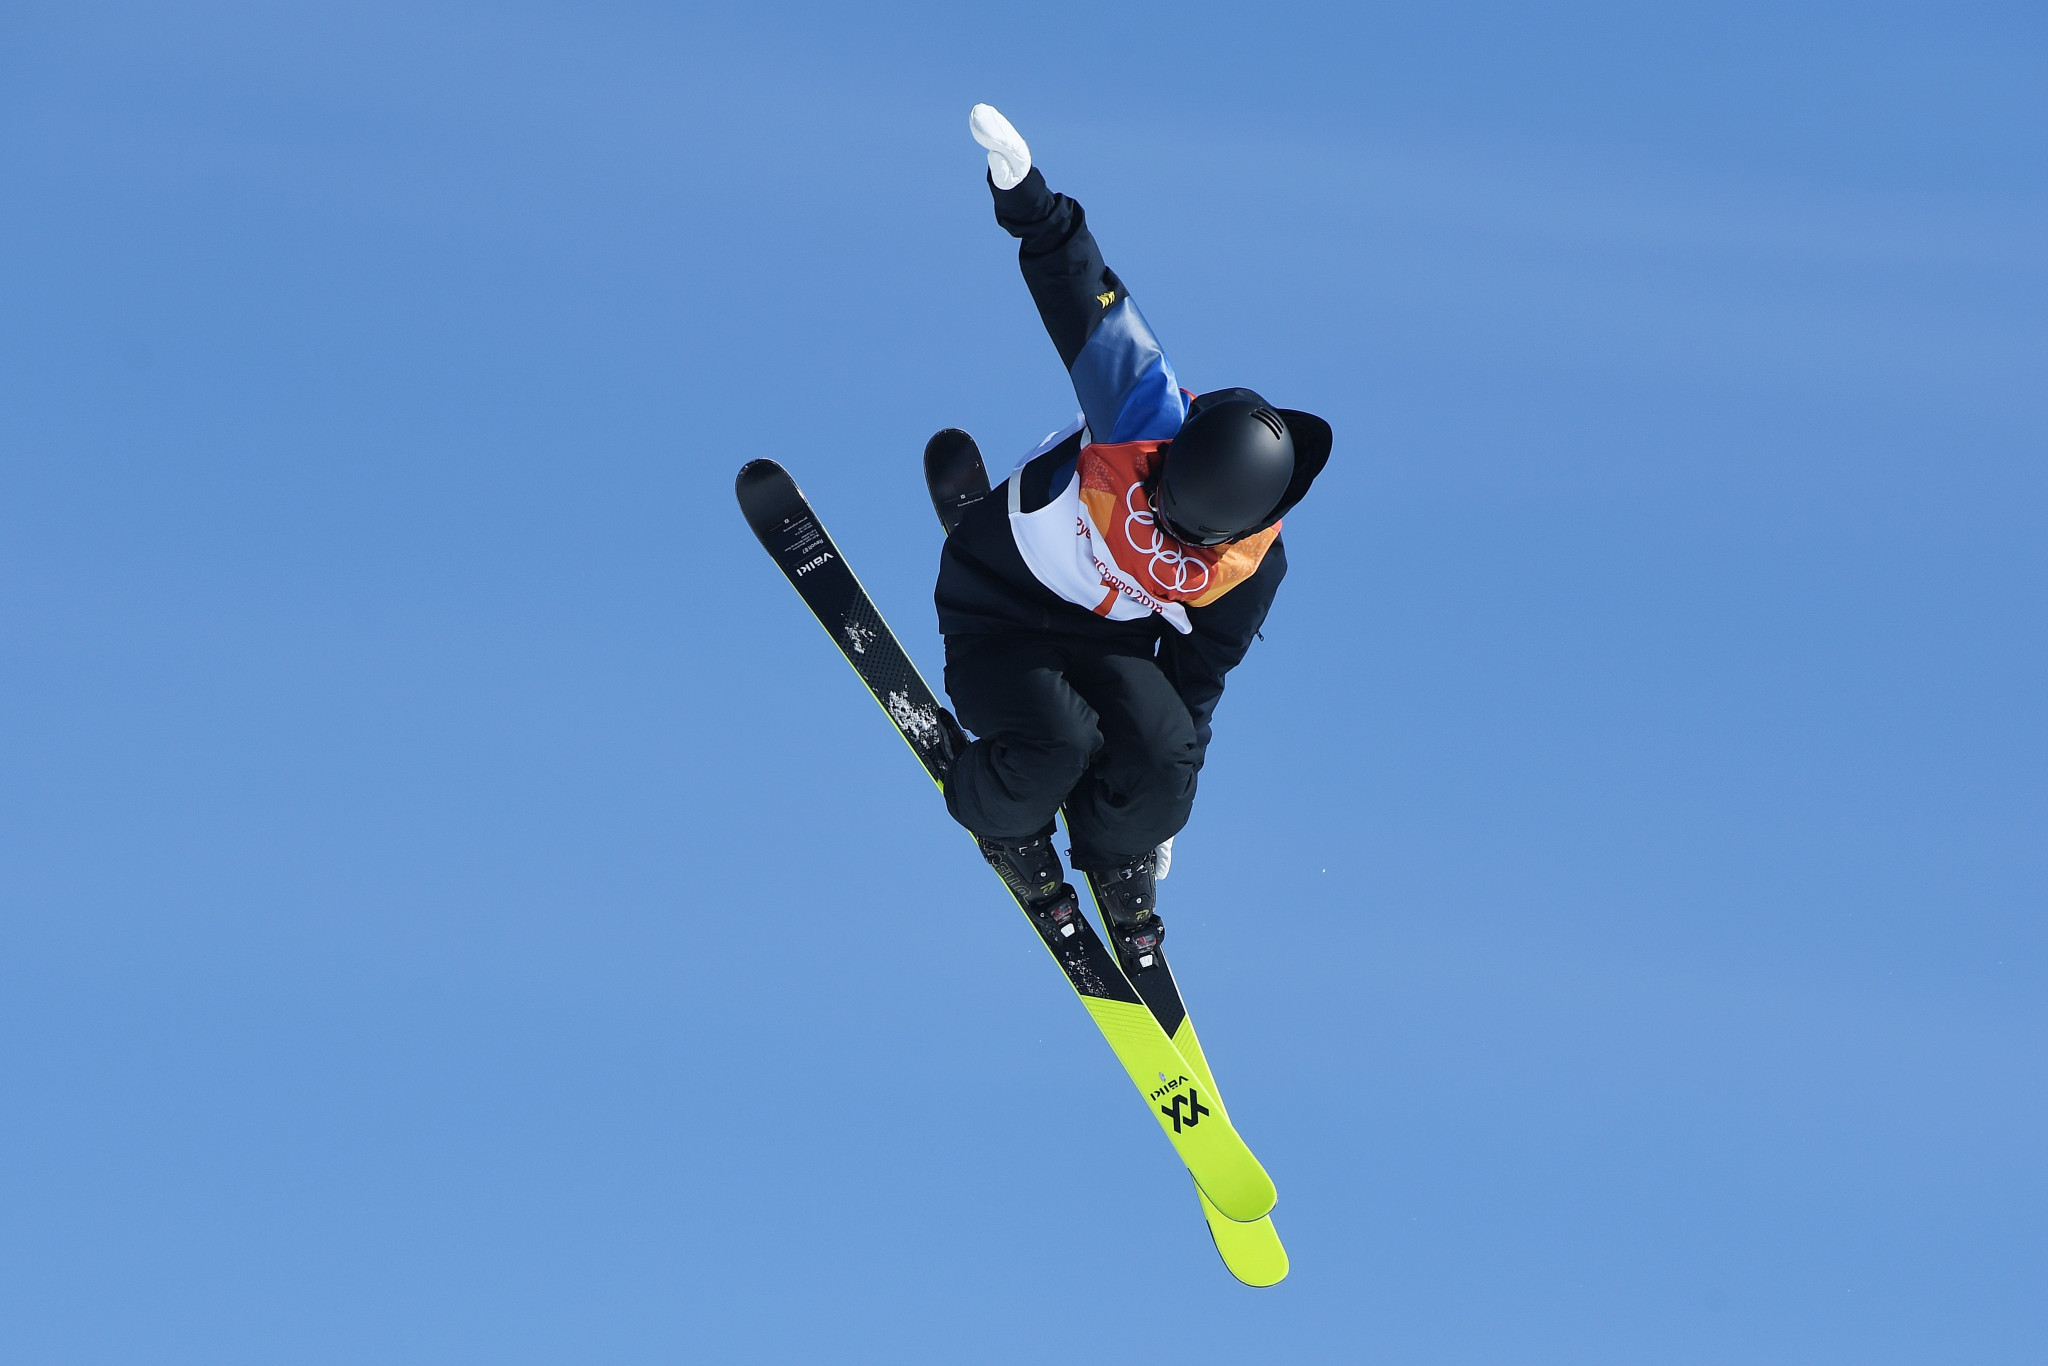 Burmansson excited for Winter Youth Olympic Games debut after long injury lay-off